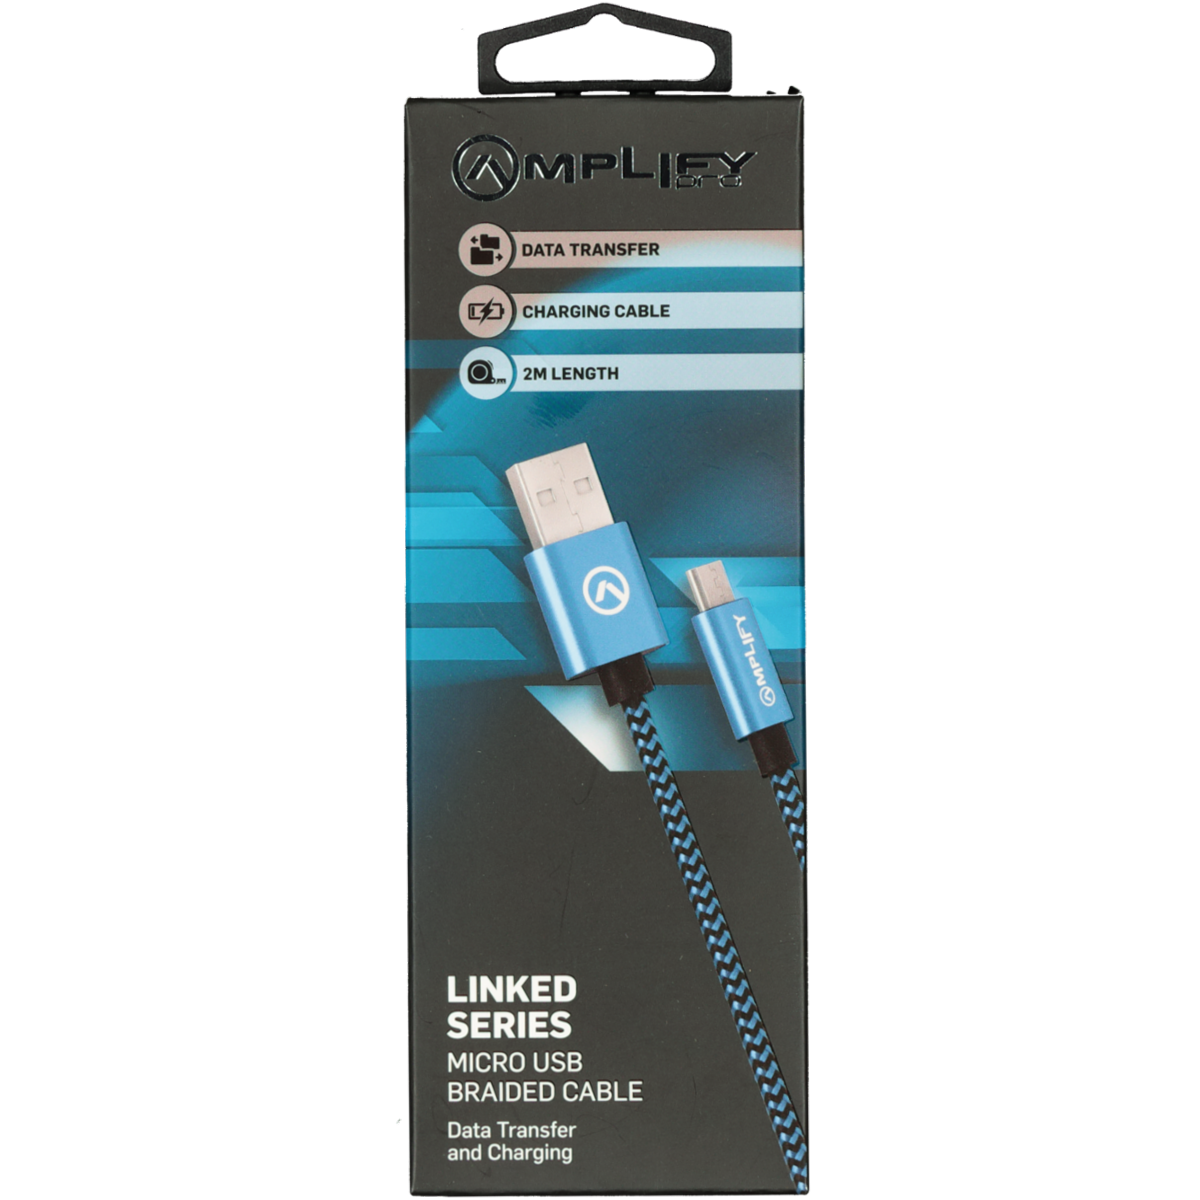 AMPLIFY LINKED SERIES USB CABLE BLUE